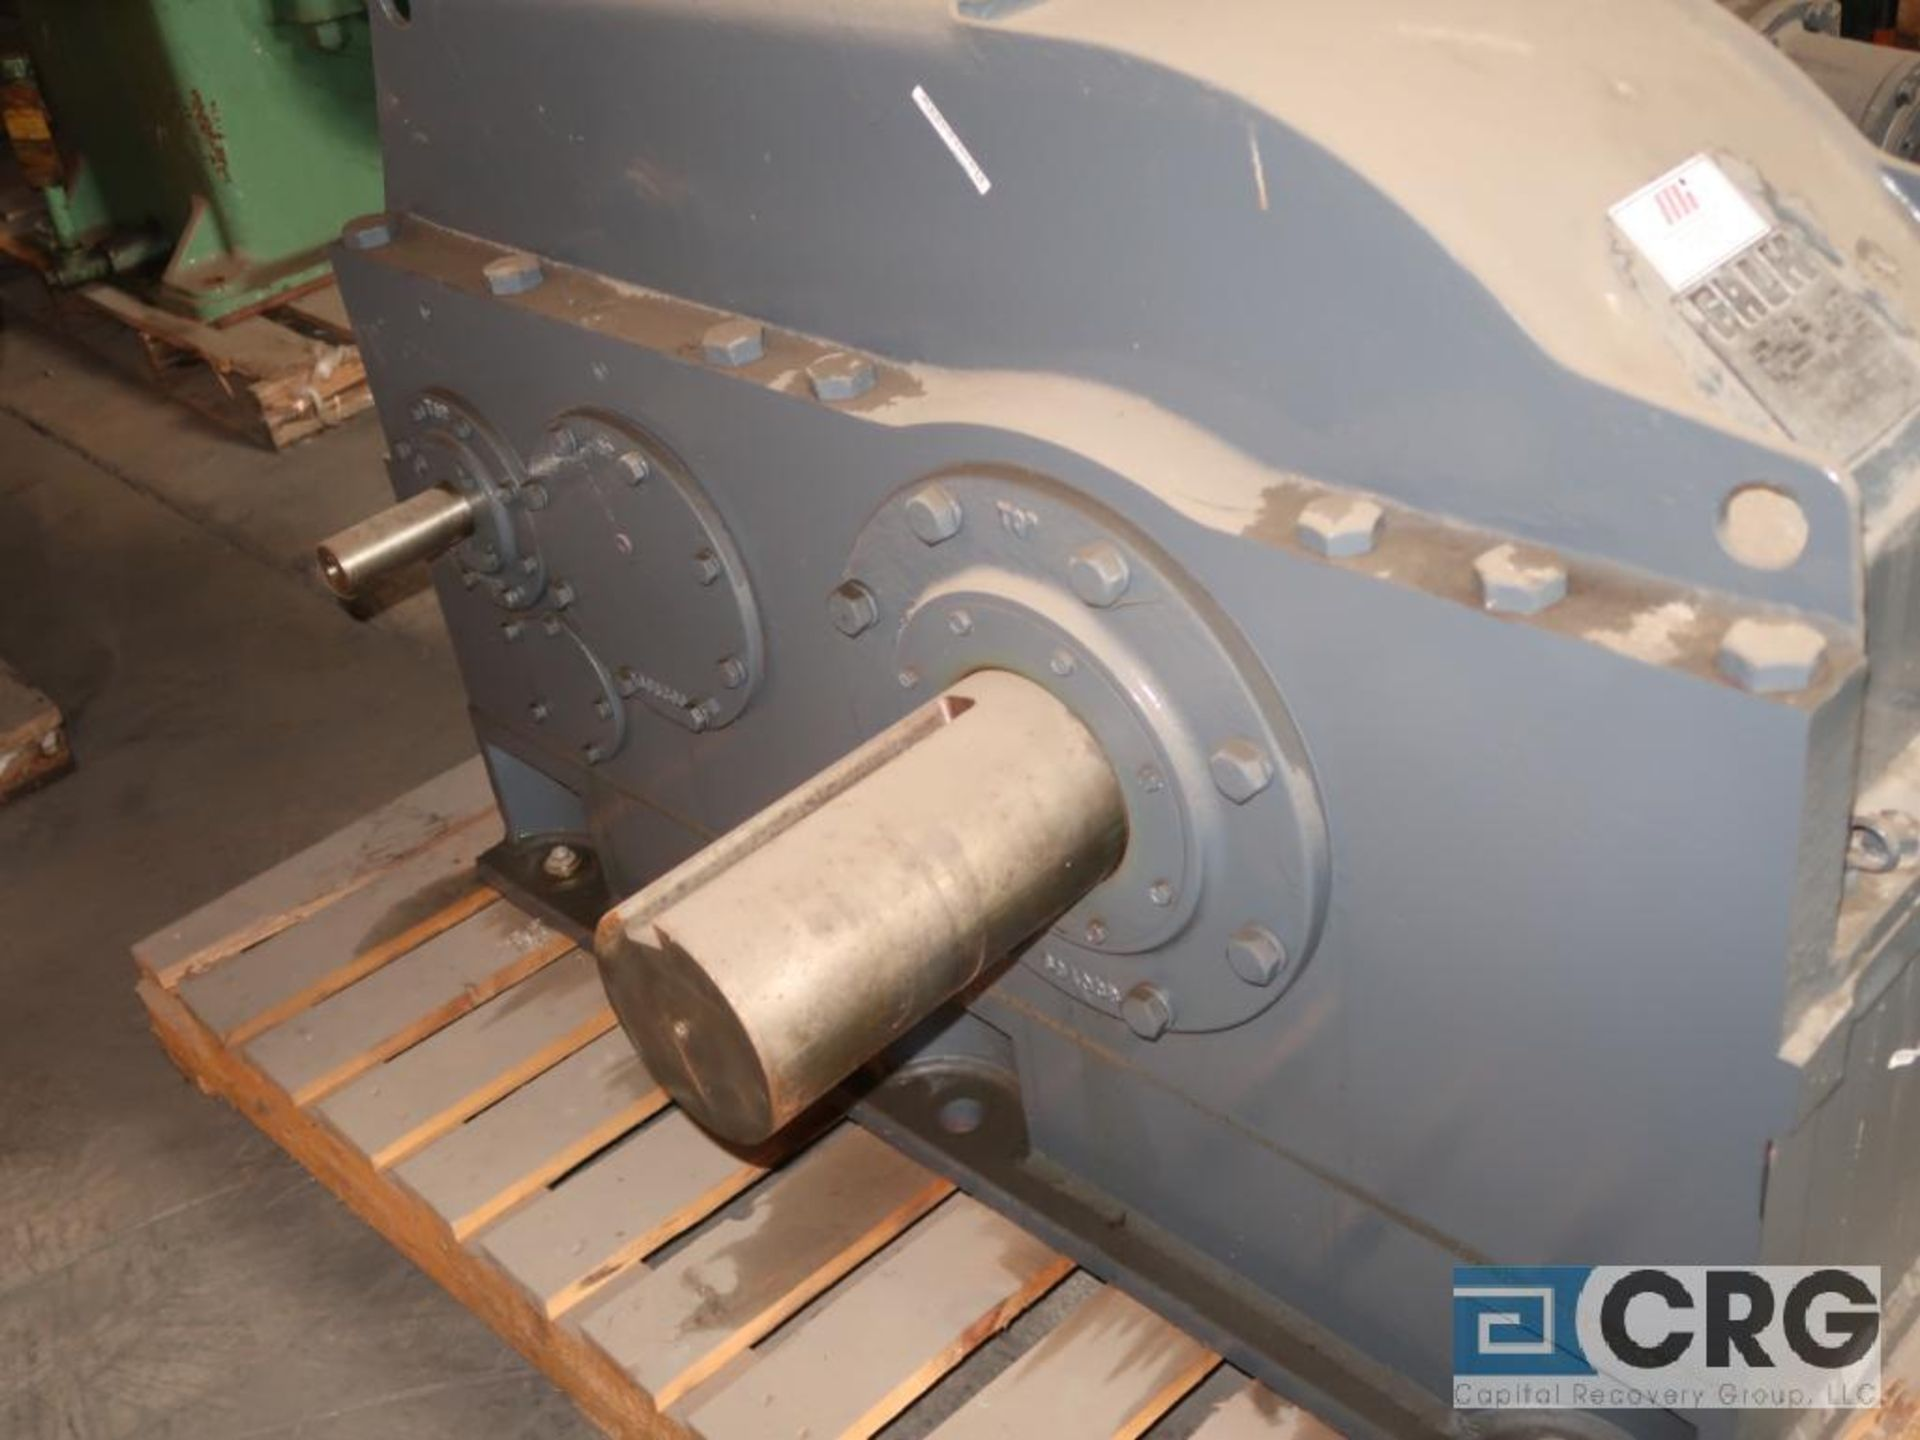 Falk 2110 Y3A gear drive, ratio-54.51, input RPM 839/315, output RPM 15.4/5.8, service rate HP. - Image 2 of 3